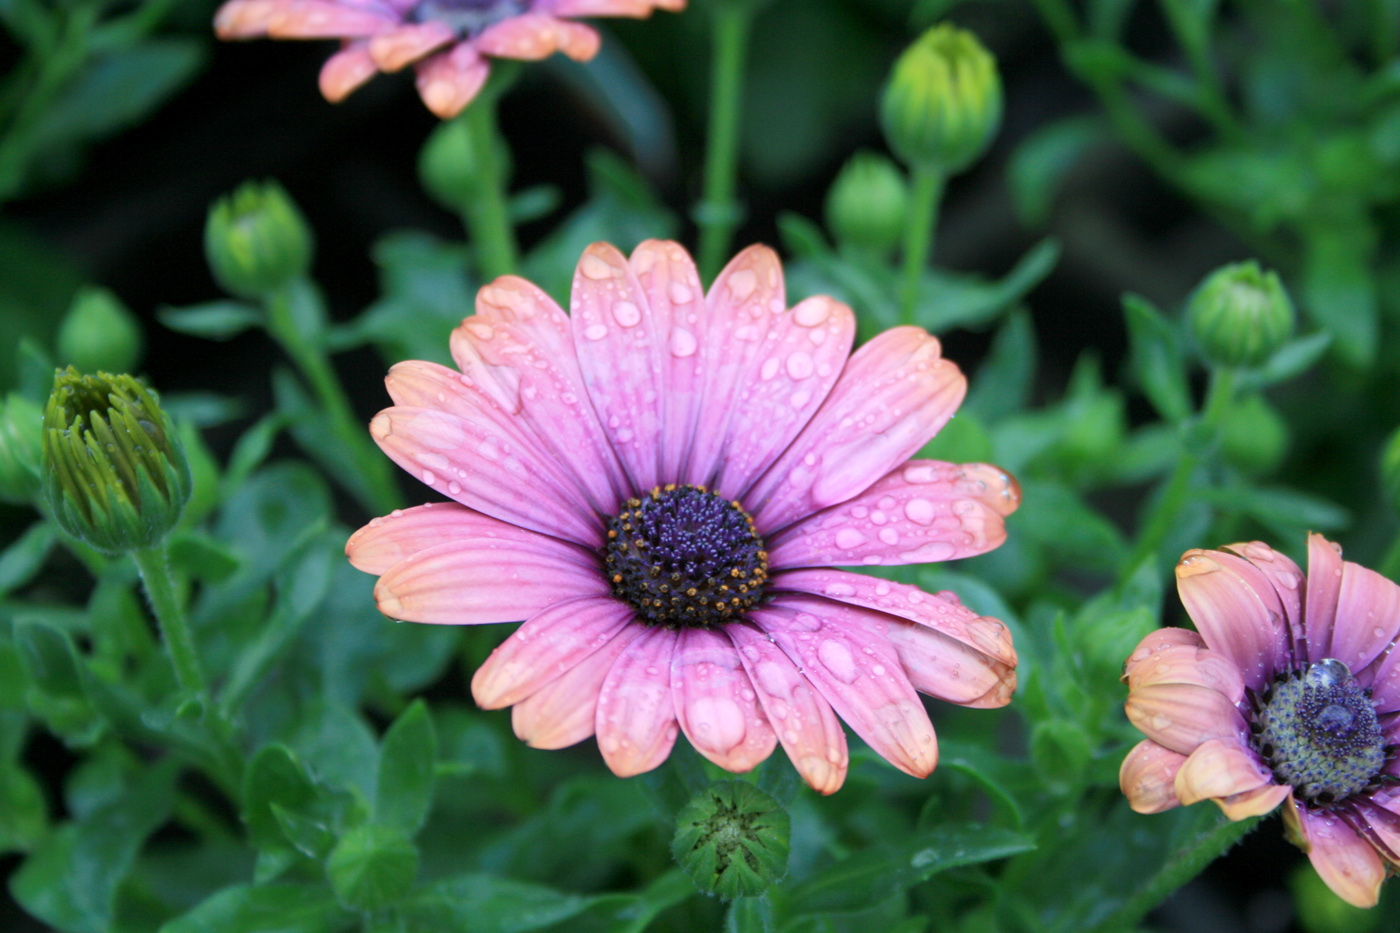 African daisies give outstanding flowers mississippi state petals of pastel lavender with copper orange tips and a bright purple blue speckled izmirmasajfo